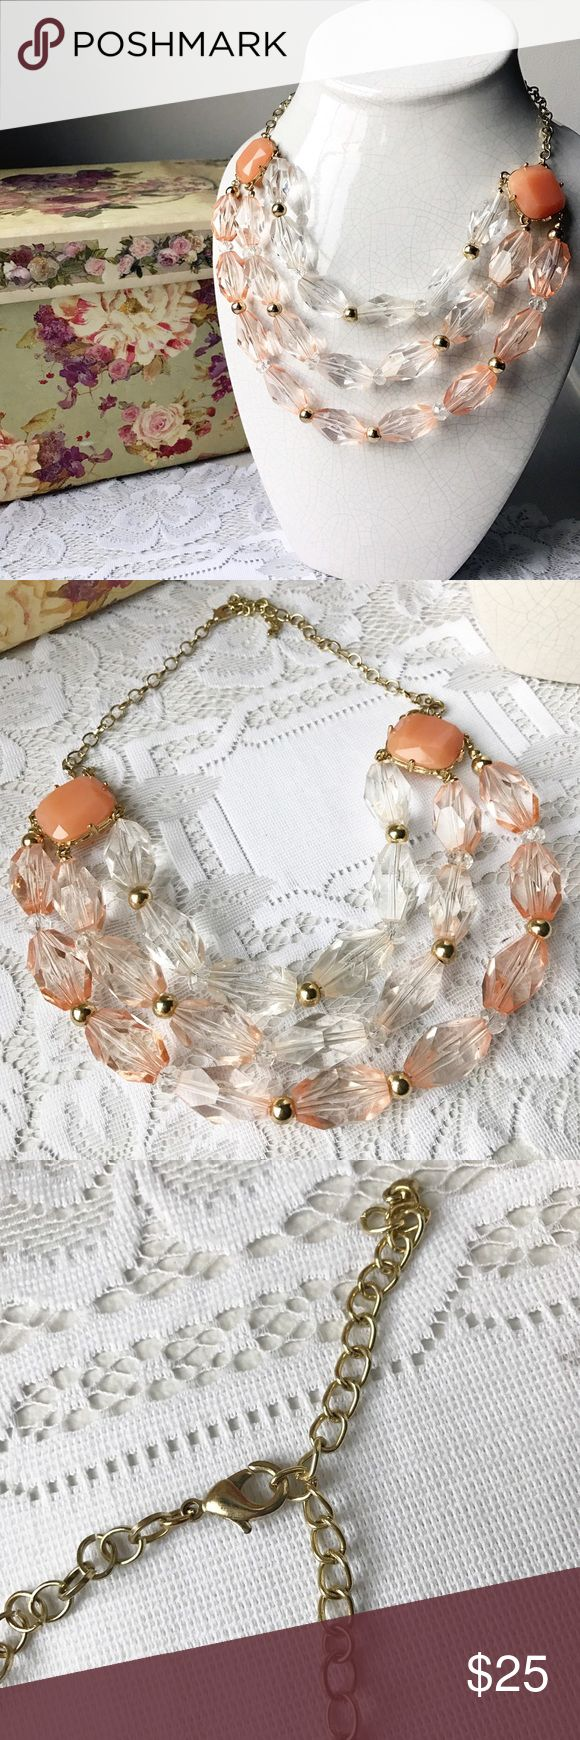 Peach Crystal Necklace Gorgeous multi strand crystal necklace with a lobster clasp Jewelry Necklaces